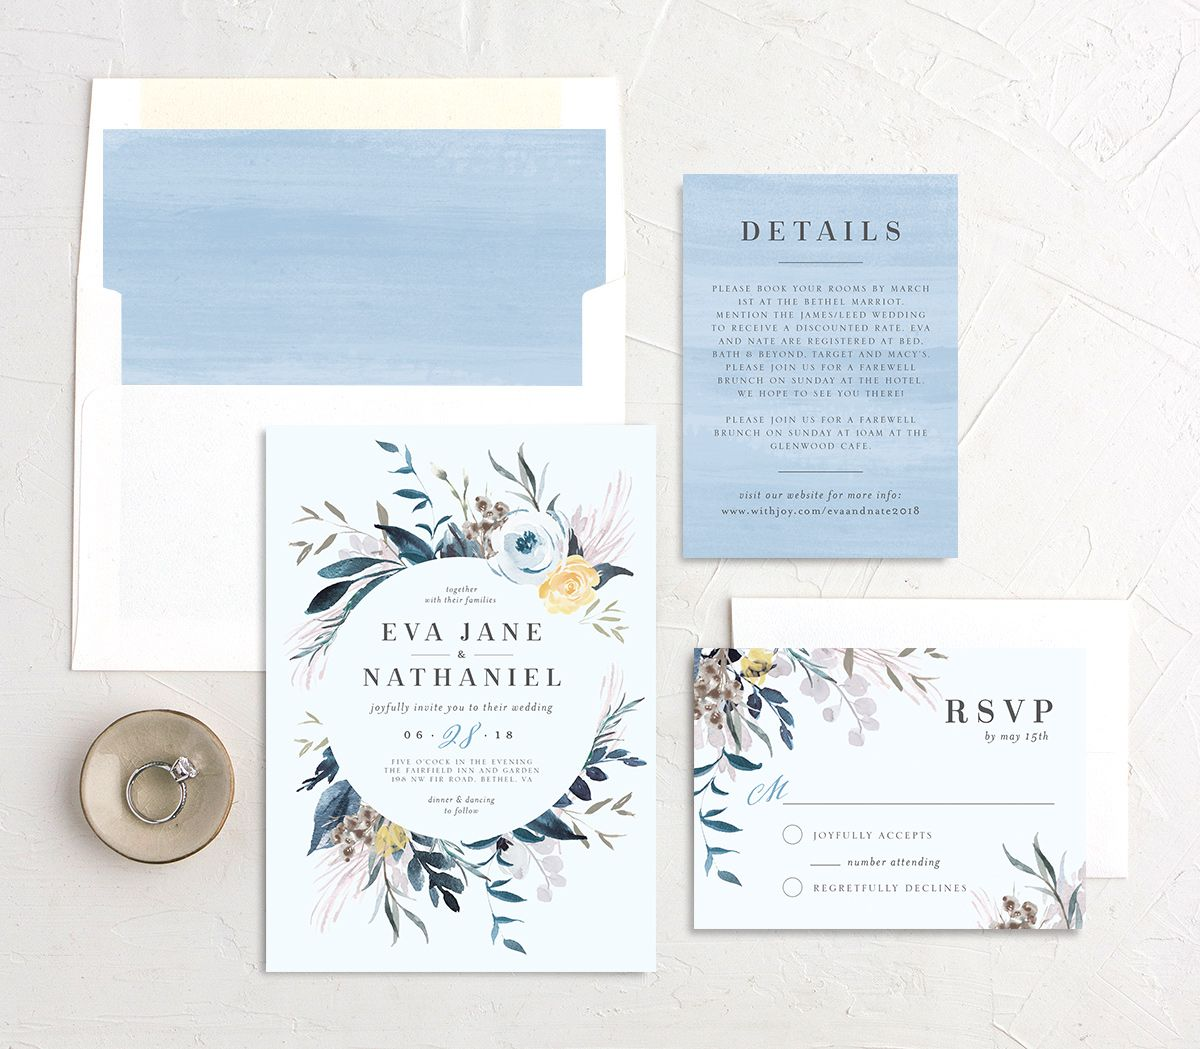 Wild wreath wedding invitation stationery suite in blue